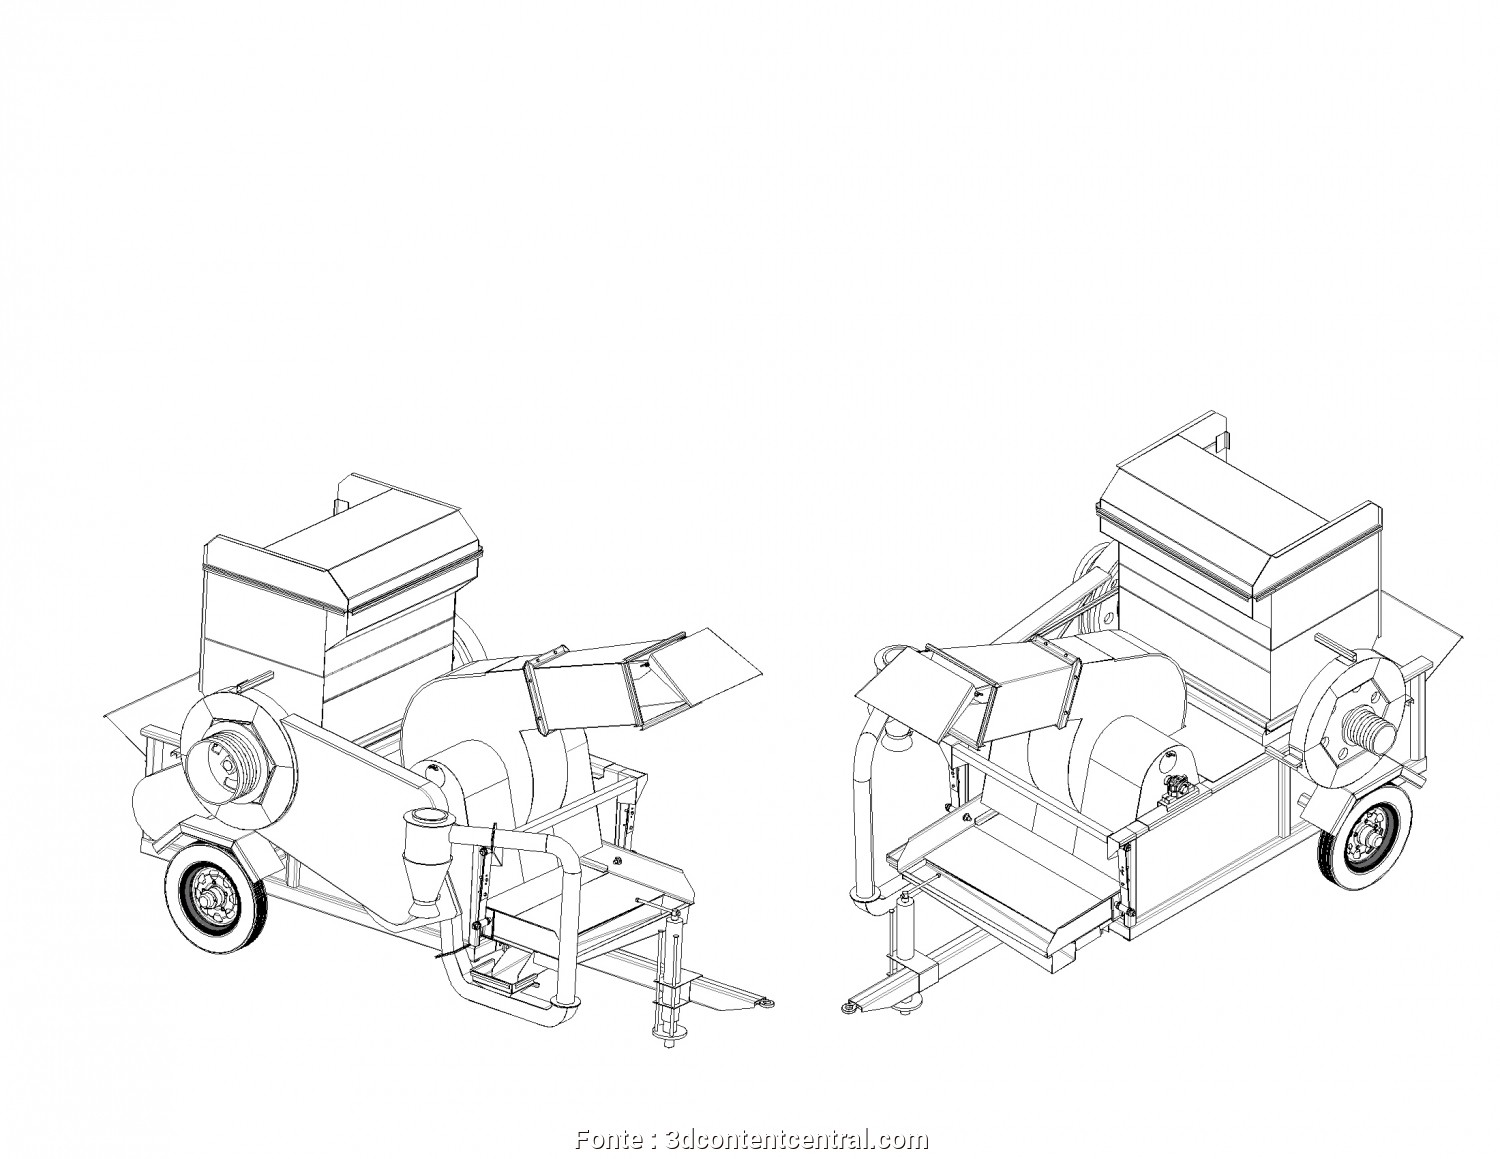 Letto, 3D, Sbalorditivo 3D ContentCentral, Free 3D, Models, 2D Drawings,, Supplier